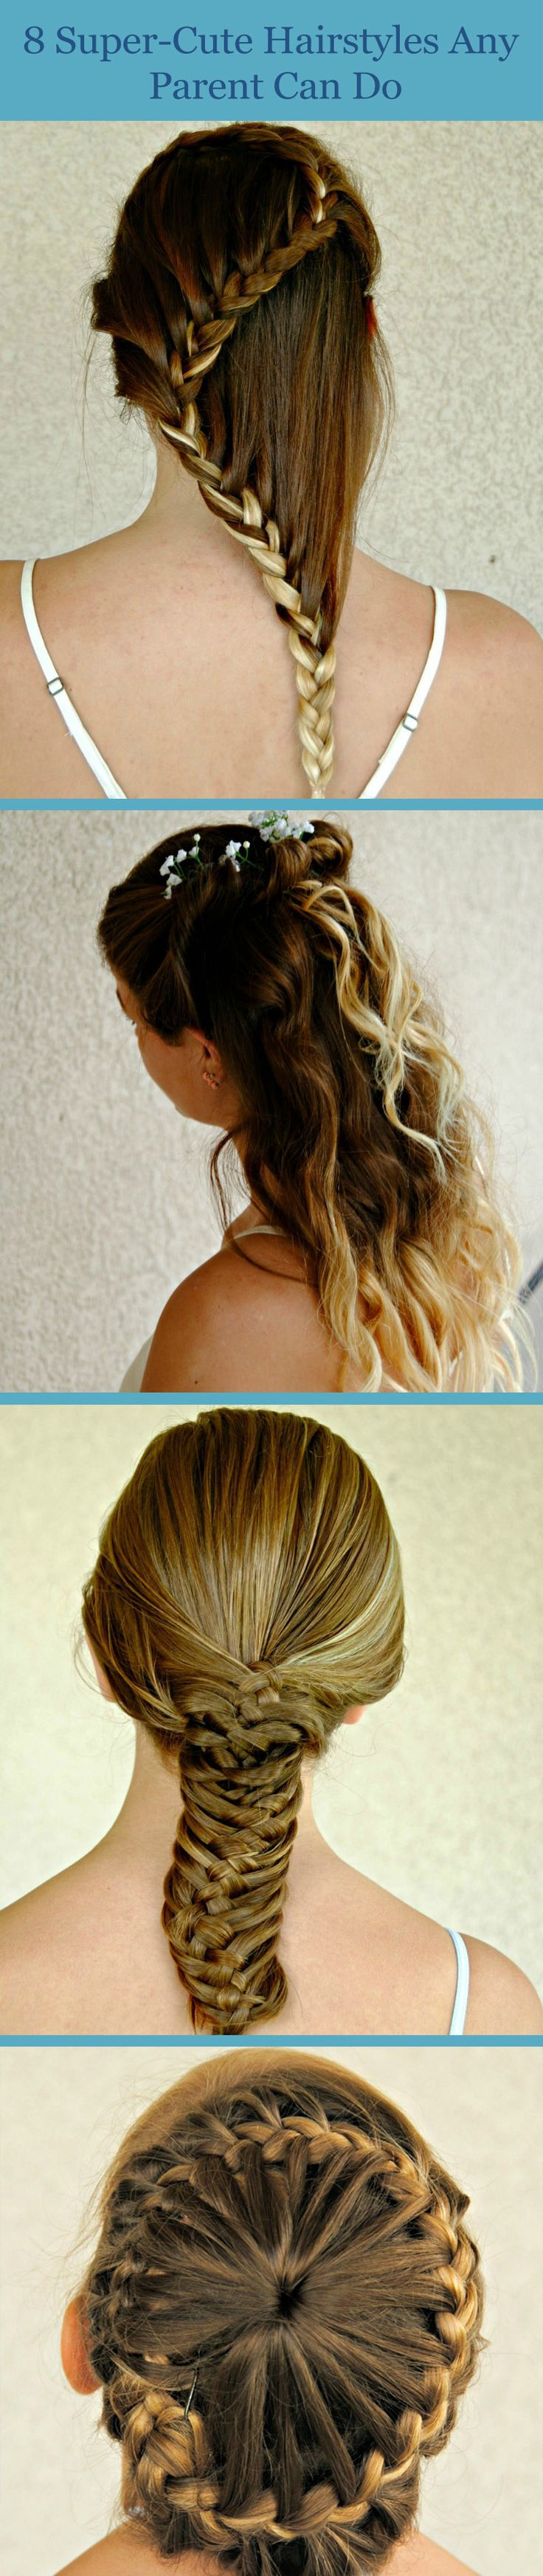 New hairstyles, Easy kid hairstyles and Hairstyles on Pinterest